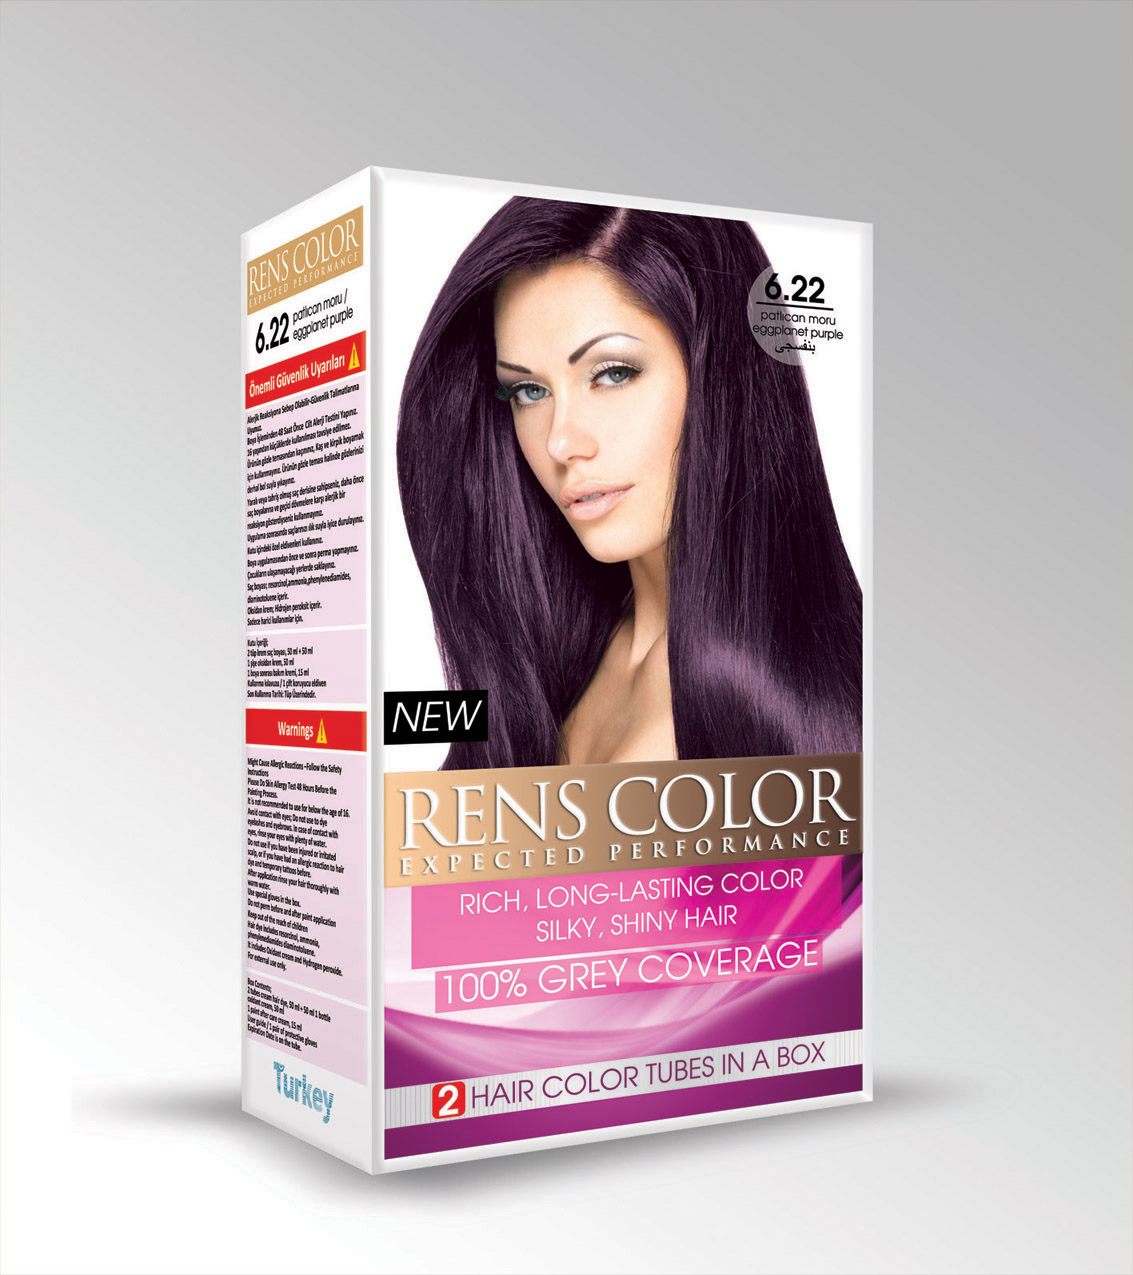 Best Over The Counter Hair Dye To Use